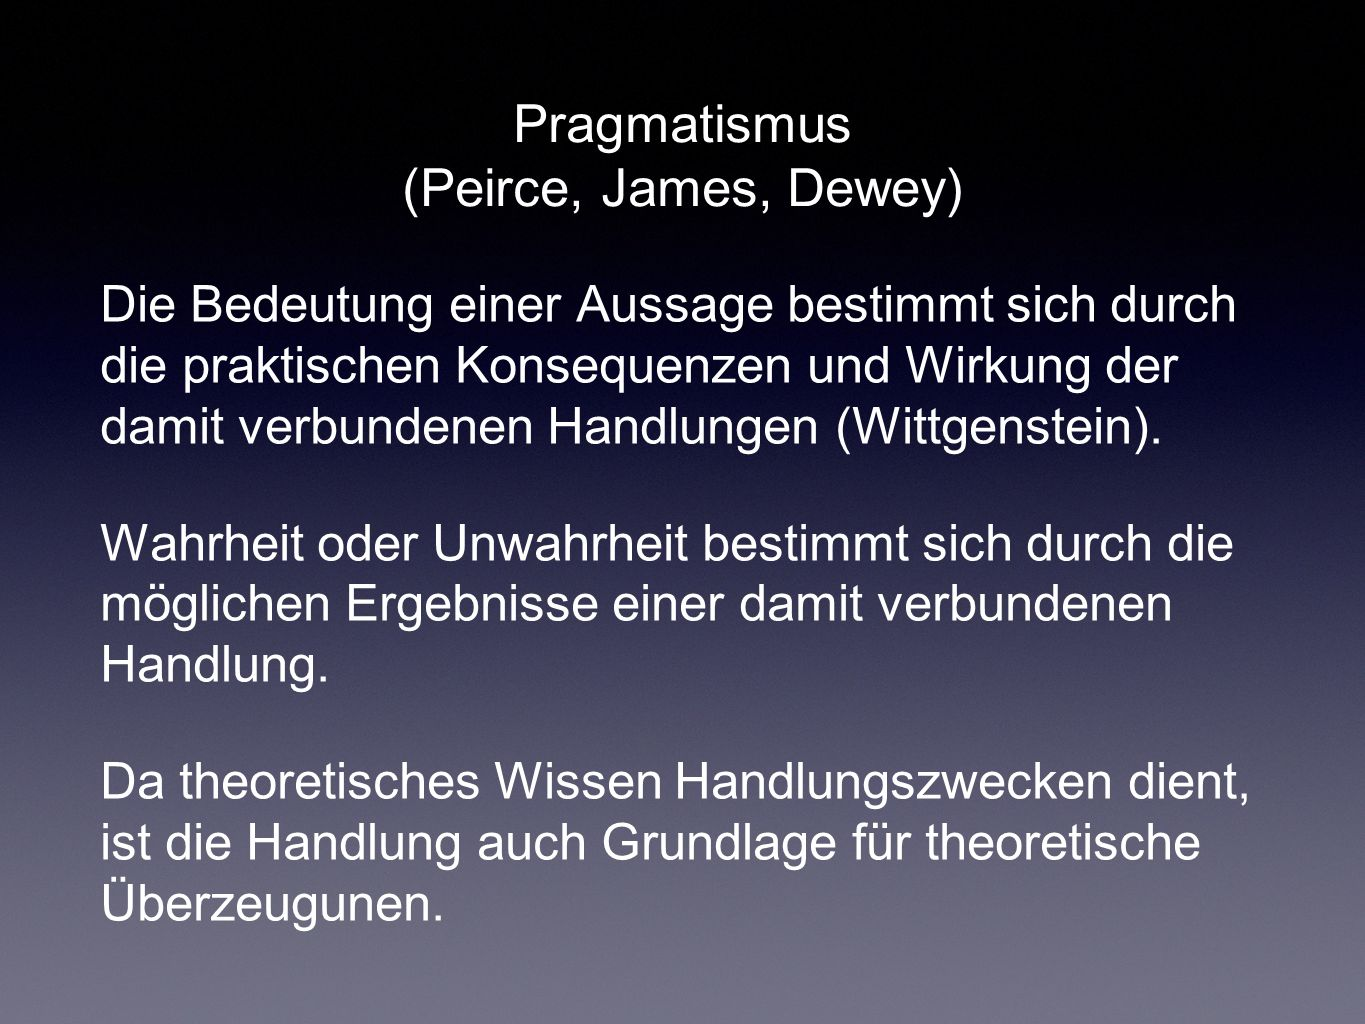 Pragmatismus (Peirce, James, Dewey)